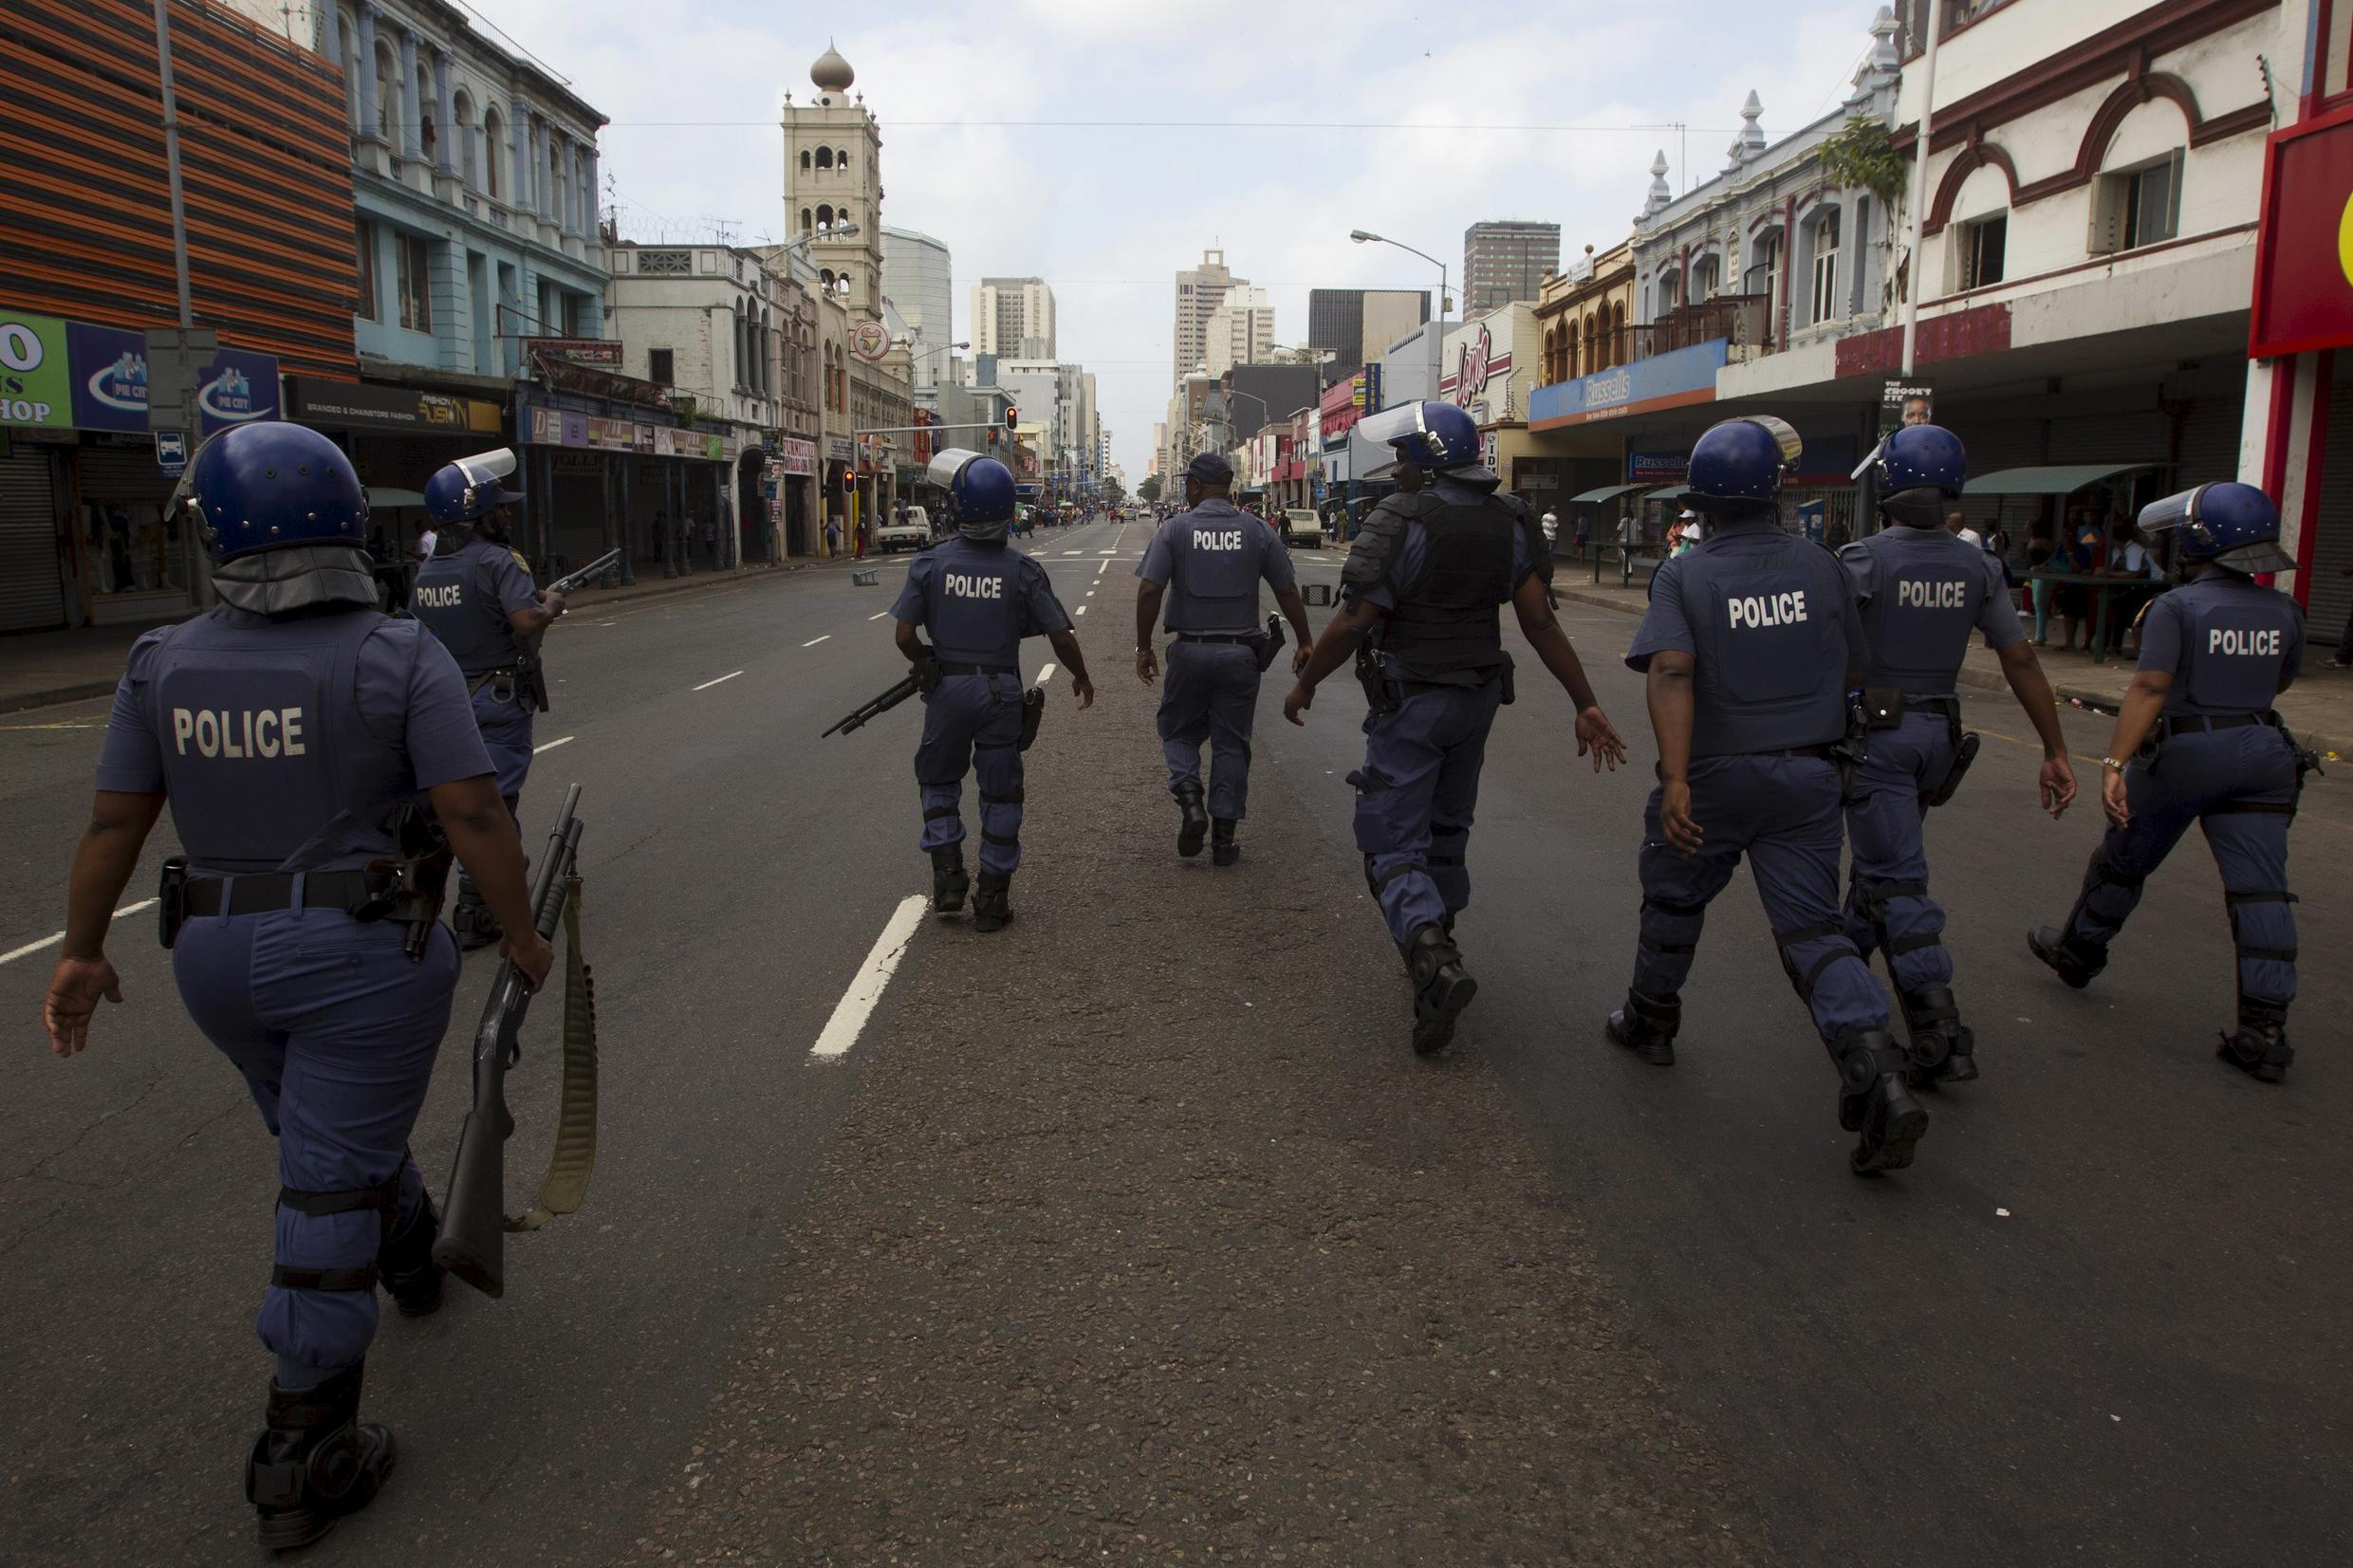 Police clear the streets in an attempt to quell rioting and looting caused by xenophobic violence in Durban 14 April 2015